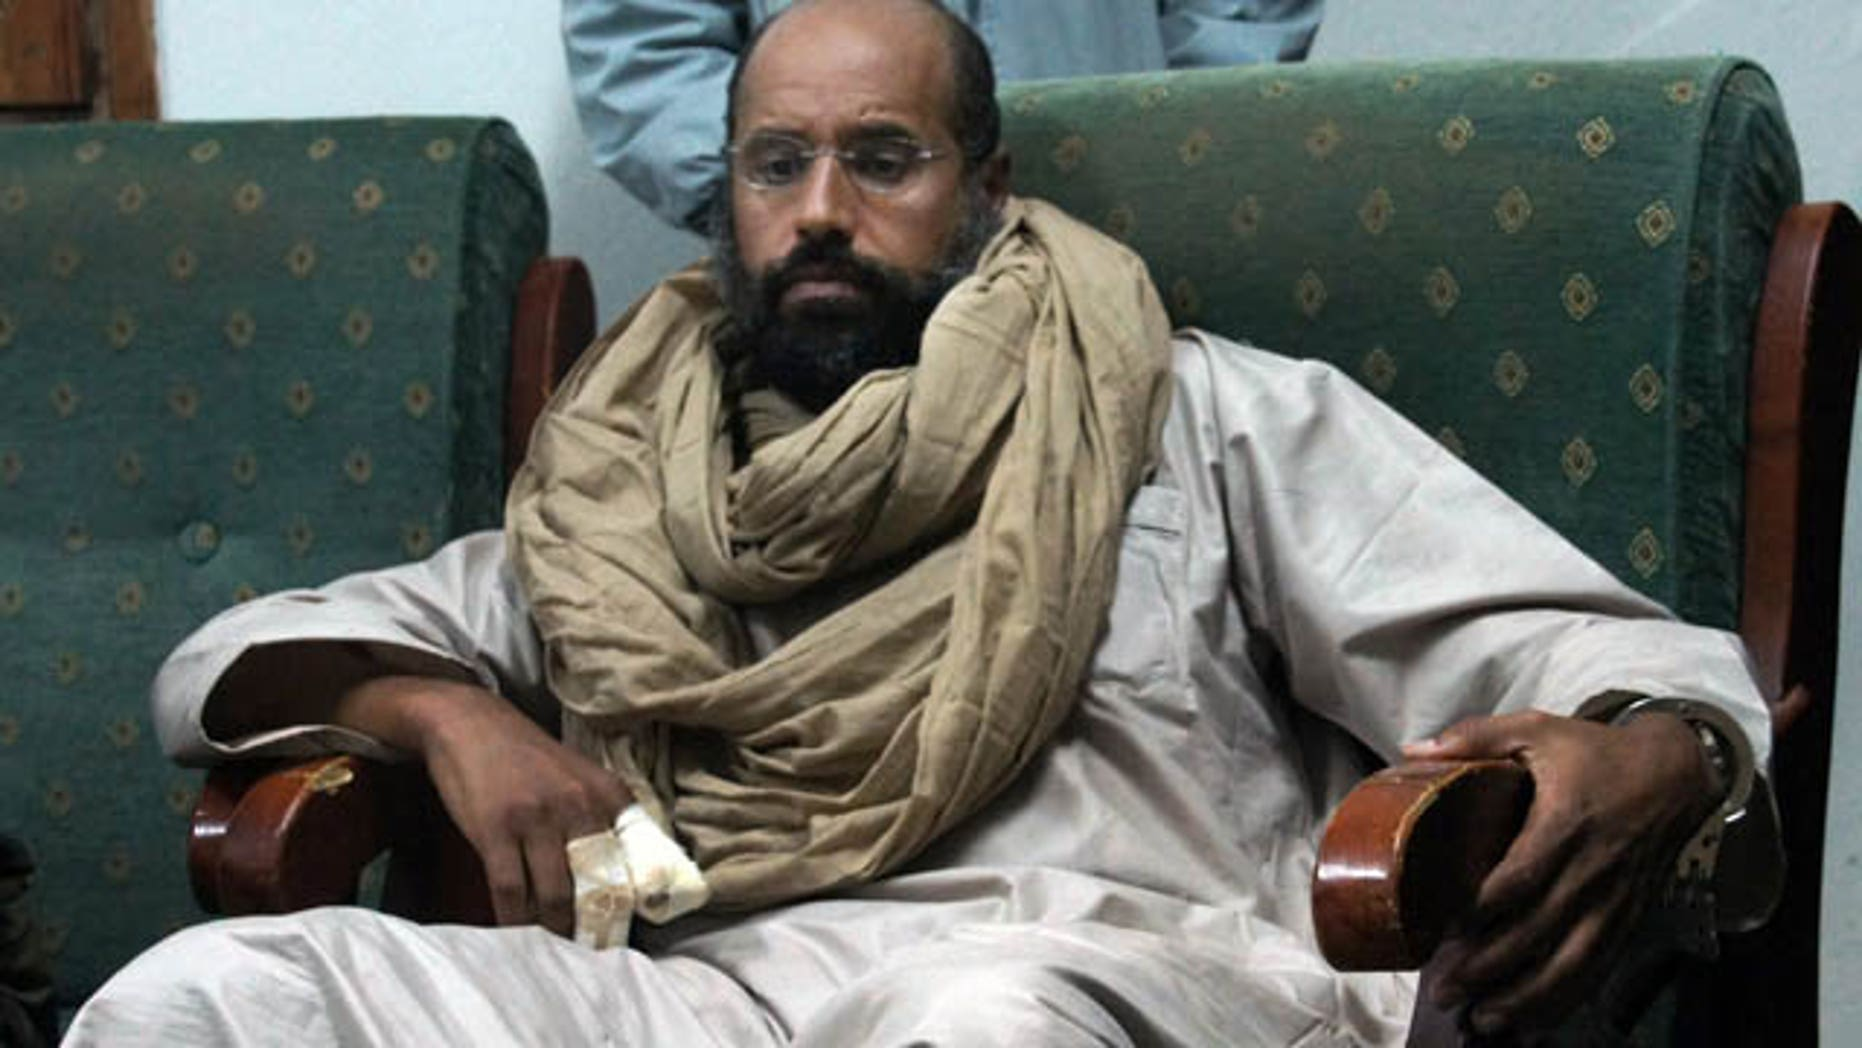 FILE - In this Saturday, Nov. 19, 2011 file photo, Seif al-Islam is seen after his capture in the custody of revolutionary fighters in Zintan. (AP Photo/Ammar El-Darwish, File)